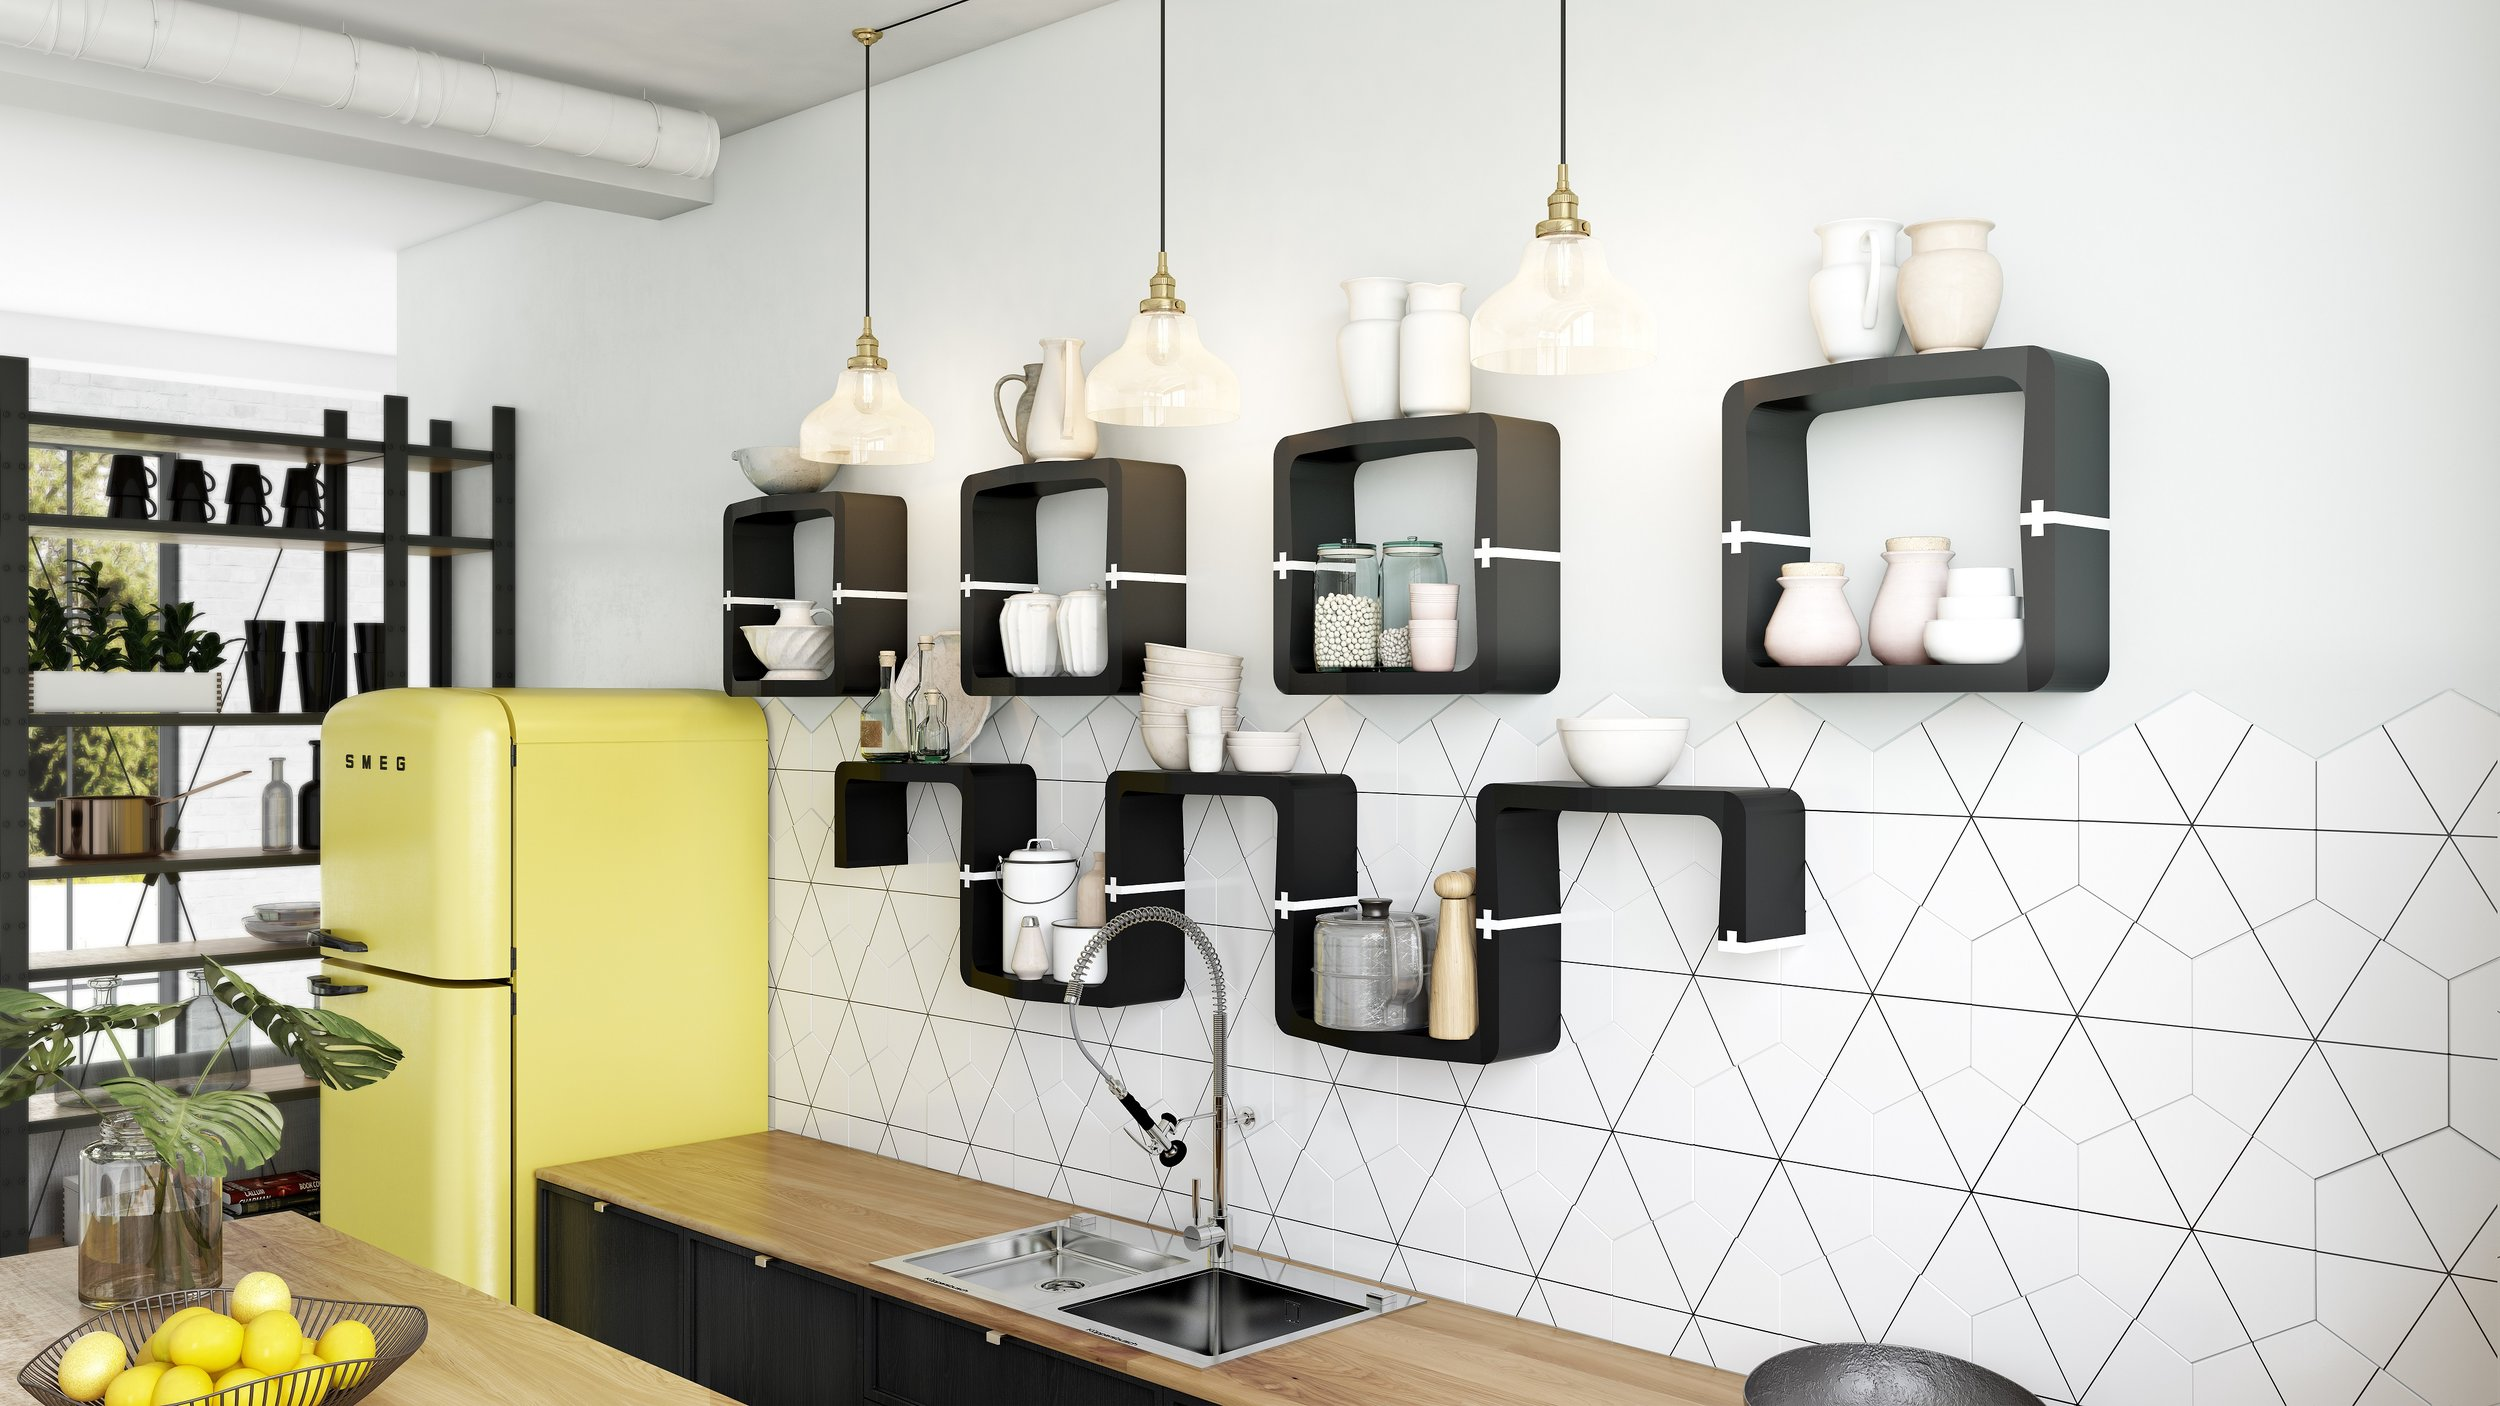 GROW! by Movisi kitchen